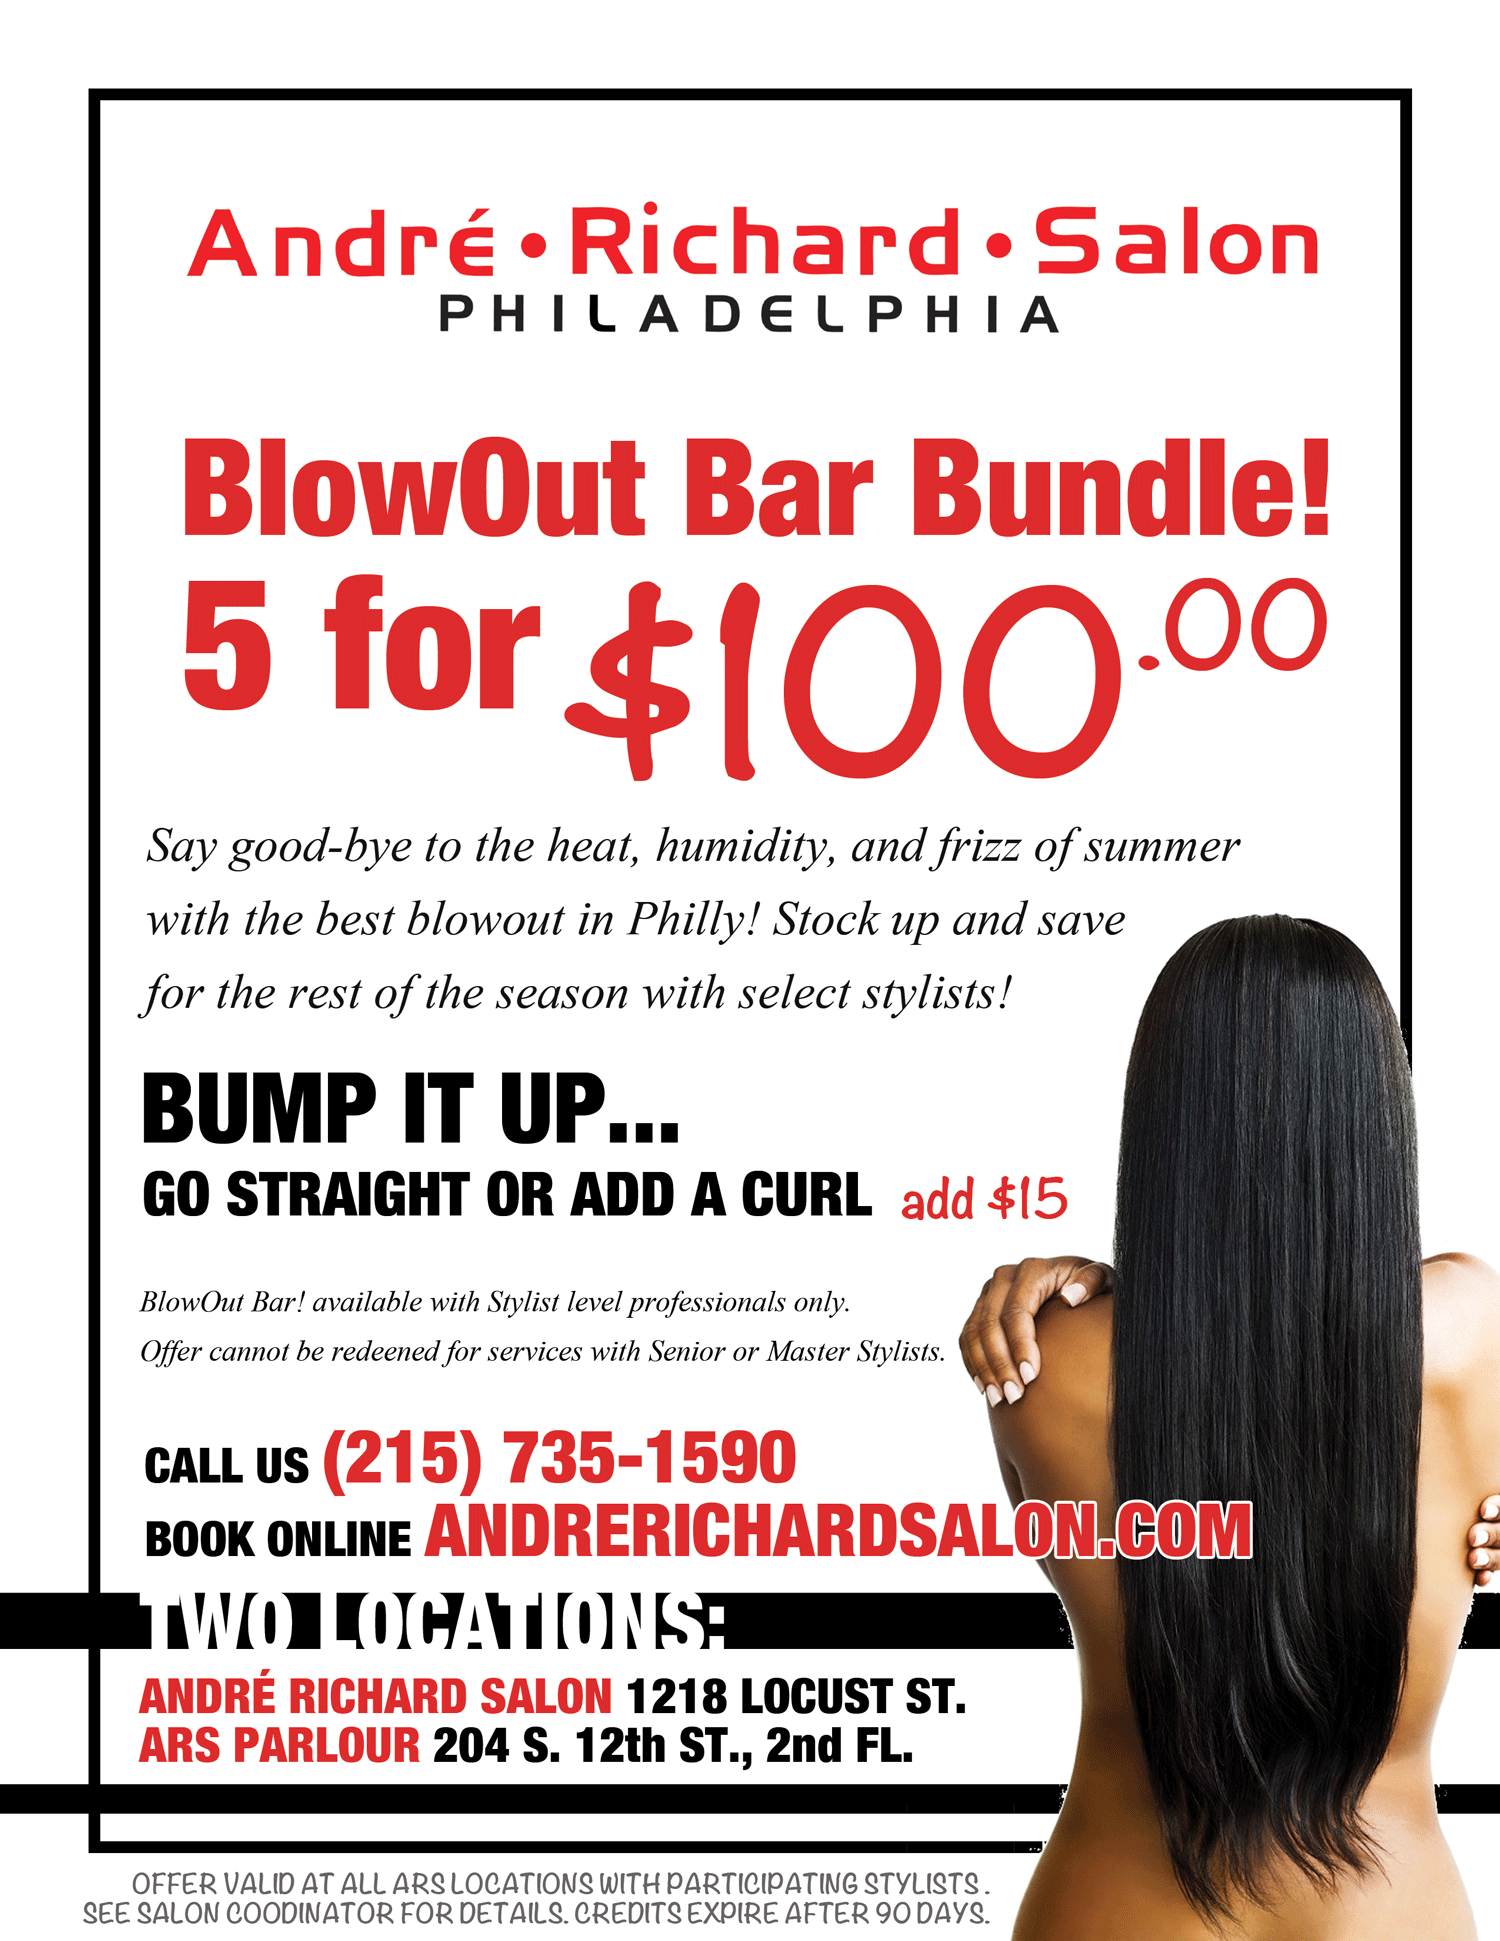 Save with the BlowOut Bar Bundle!